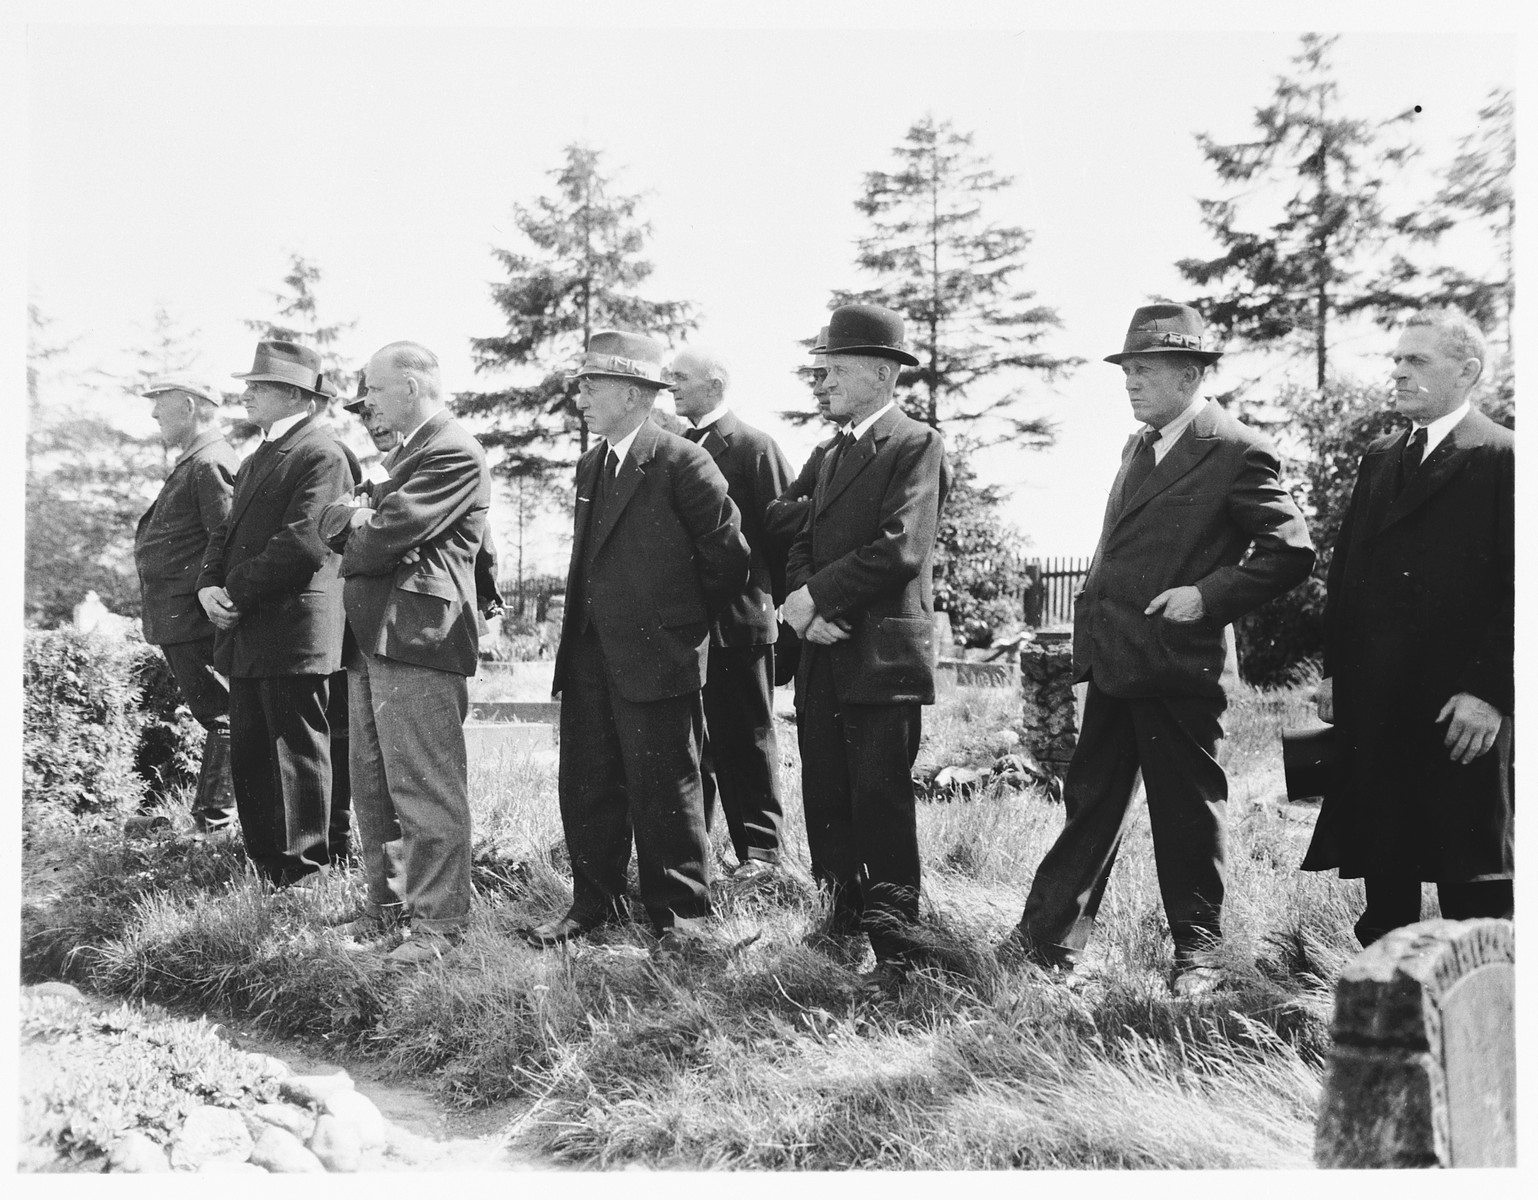 German civilians from Estedt attend the funeral services performed by a Catholic priest for prisoners exhumed from a mass grave near the town.